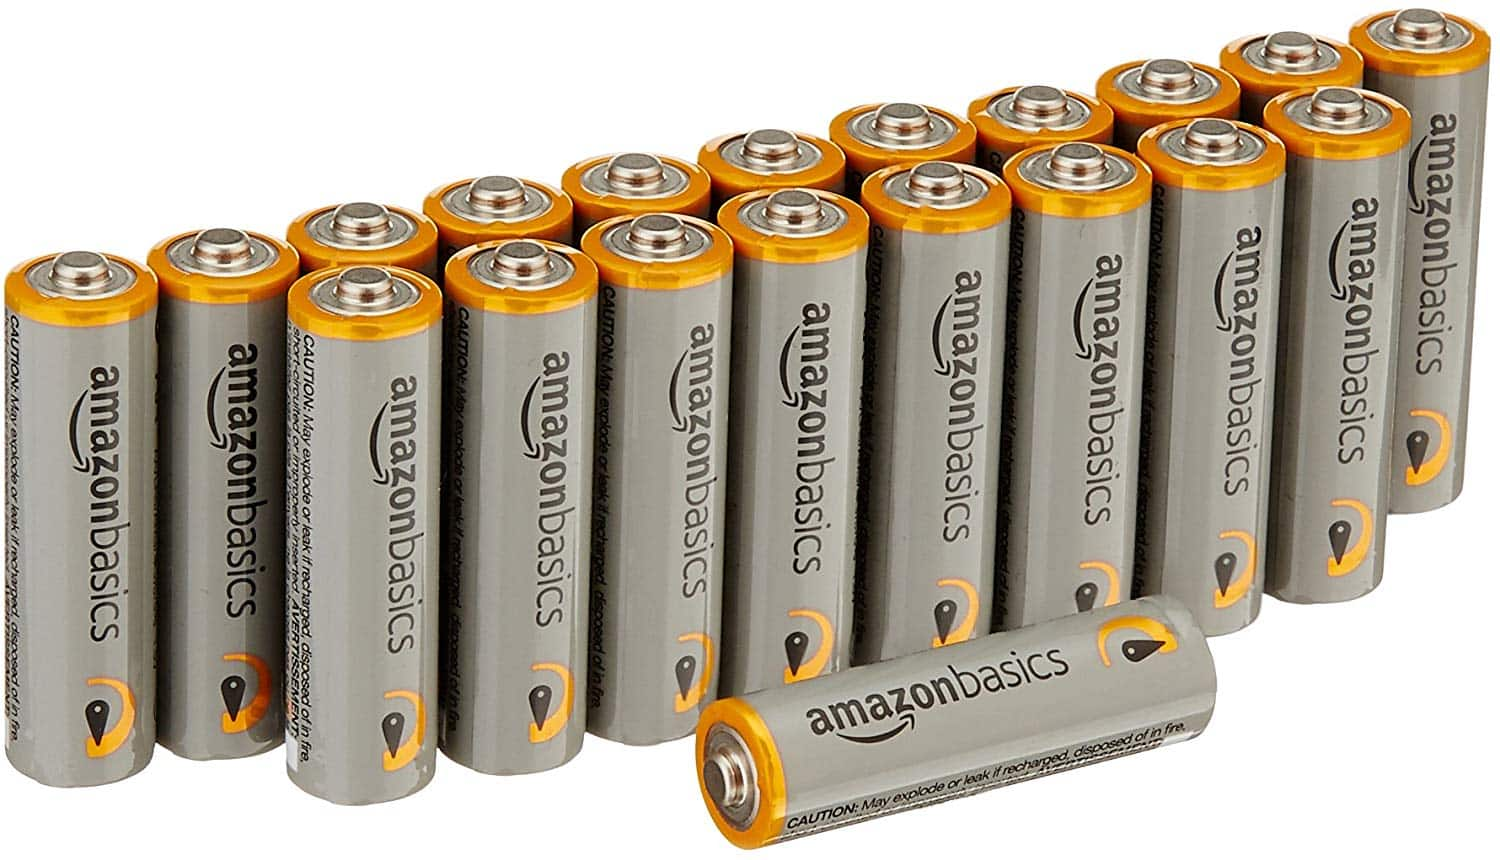 AA/AAA Amazon Batteries 20ct. - w/30% subscribe and save discount - $5.52 & $4.22 (YMMV)